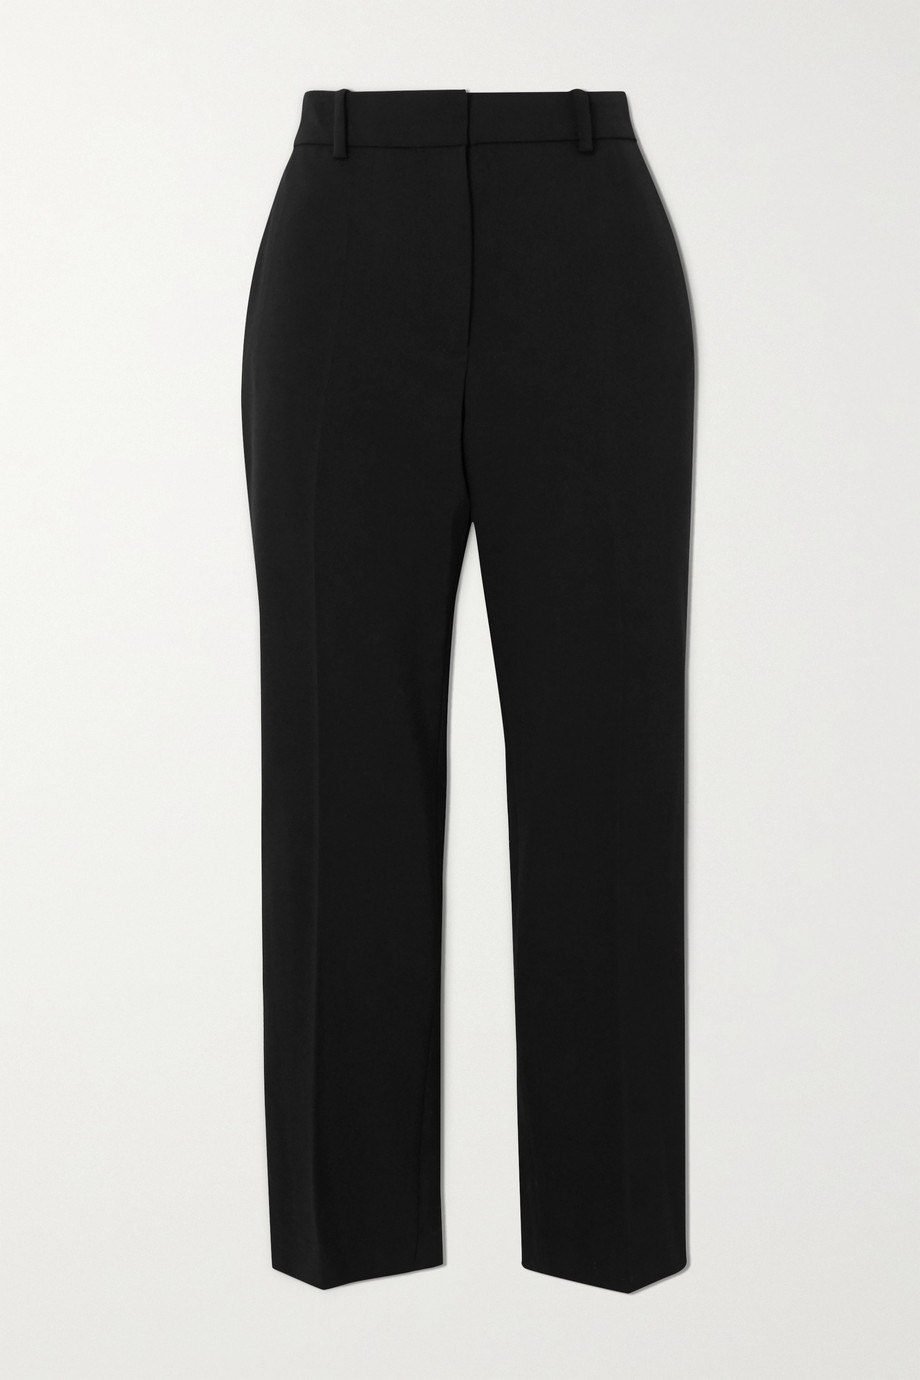 Joseph Coleman wool-blend slim-leg pants